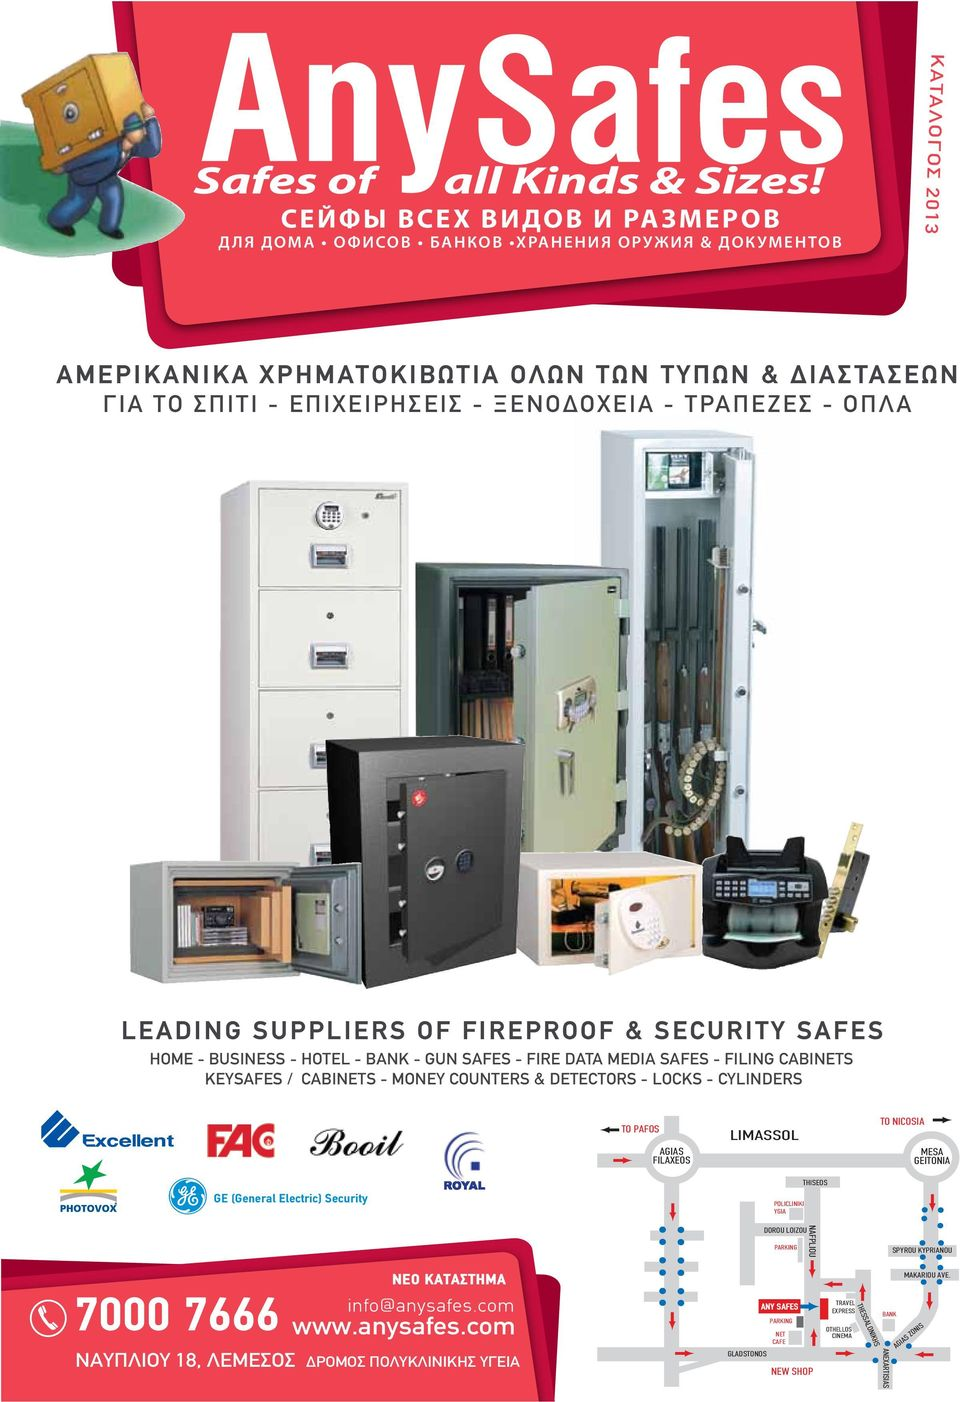 FILAXEOS LIMASSOL TO NICOSIA MESA GEITONIA GE (General Electric) Security POLICLINIKI YGIA THISEOS 7 7666 ΝΕΟ ΚΑΤΑΣΤΗΜΑ info@anysafes.